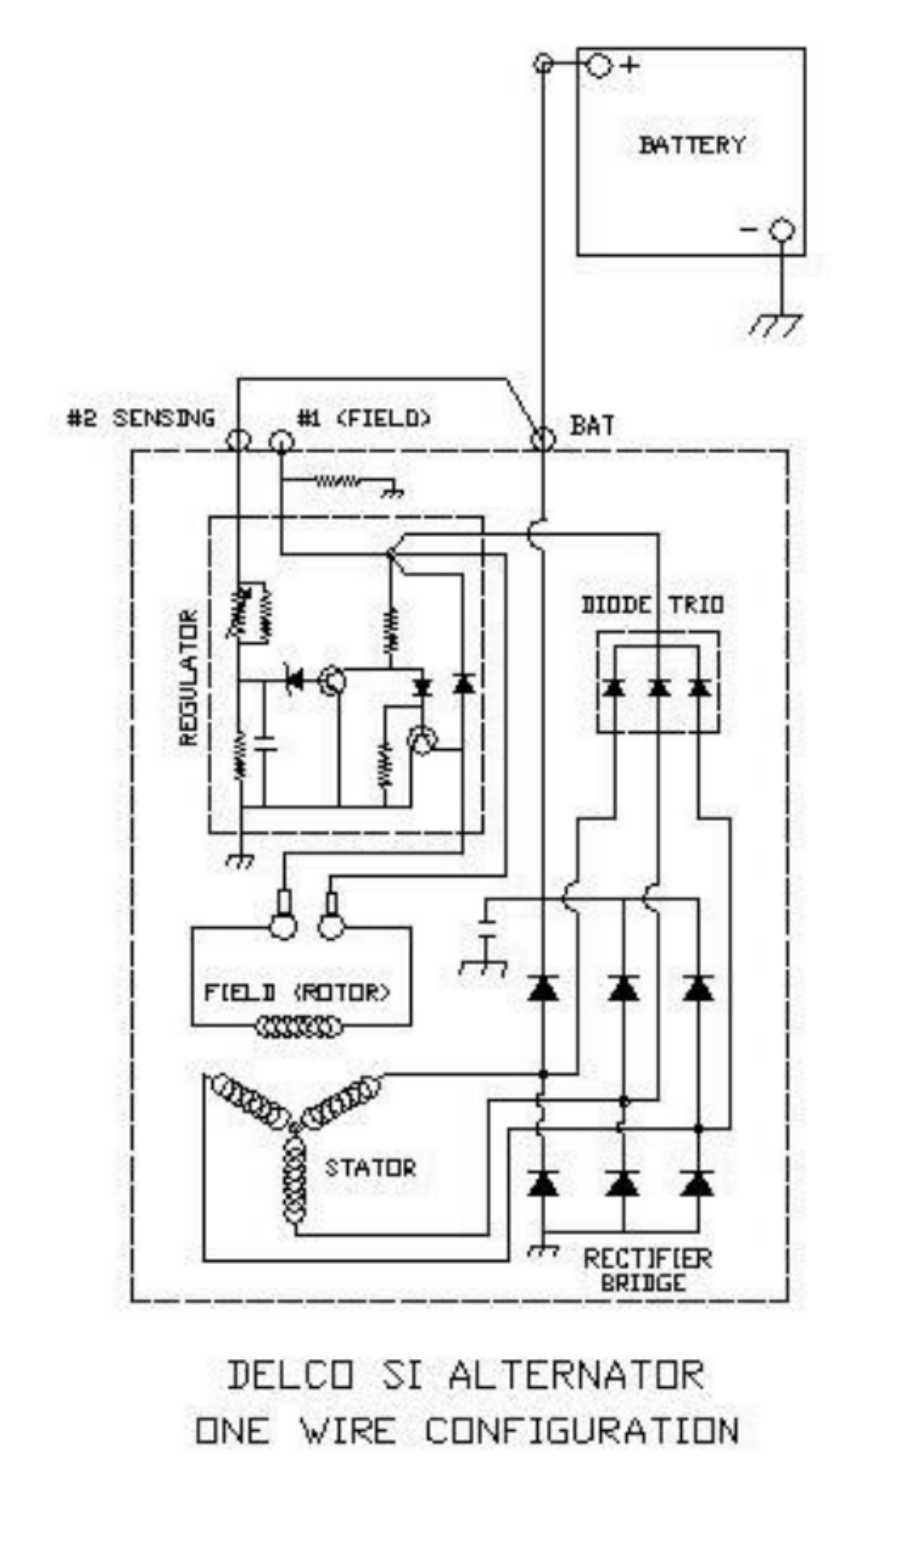 [SCHEMATICS_4FR]  CT_3402] Circuit Diagram On Delco Remy Voltage Regulator Wiring Diagram  Wiring Diagram | Delco Remy Alternator Wiring Schematic |  | Apom Simij Knie Rdona Benol Eatte Mohammedshrine Librar Wiring 101